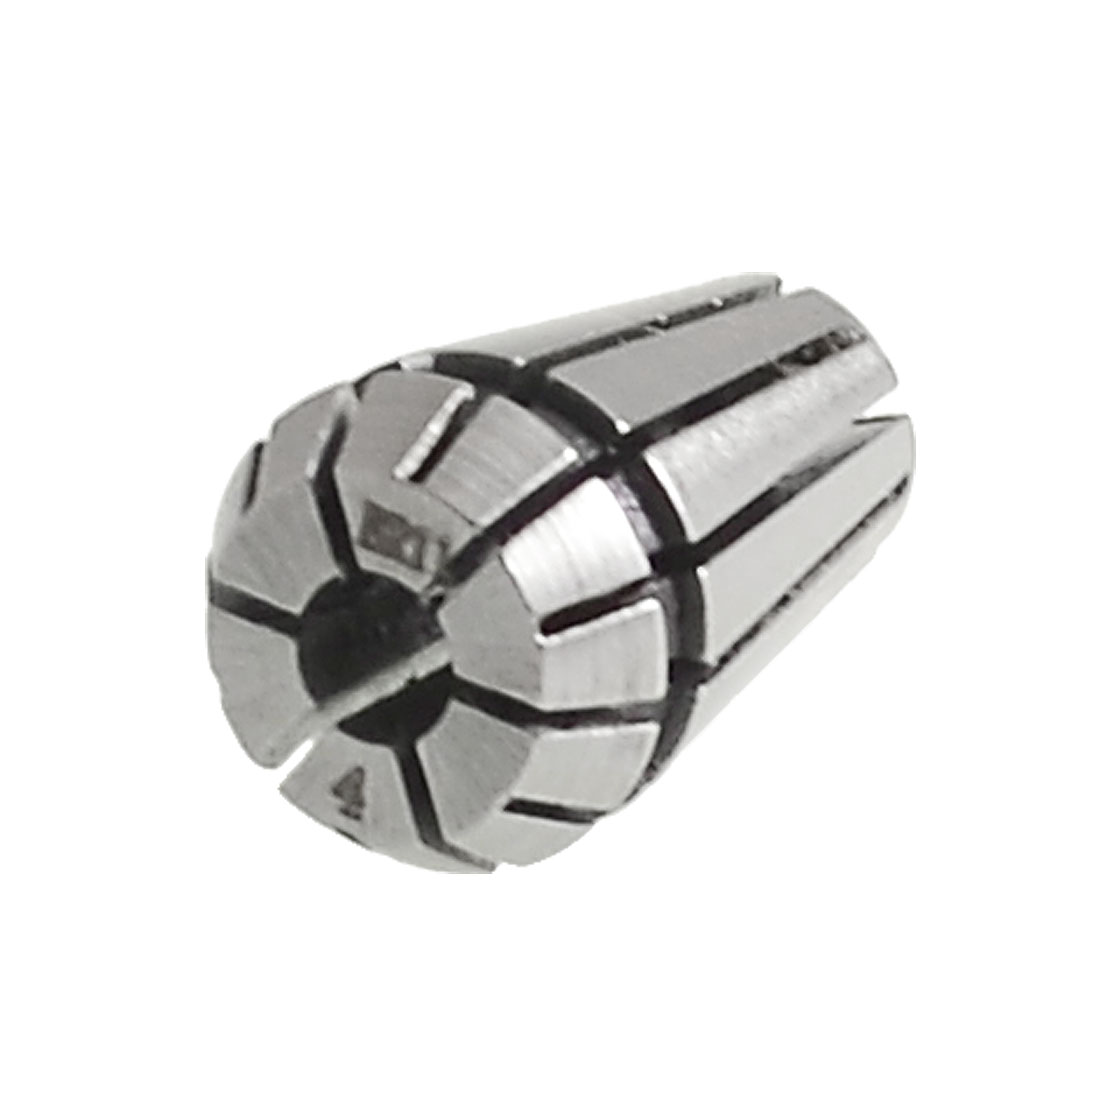 "Machine ER-11 4mm 5/32"" Stainless Steel Spring Collet Chuck"